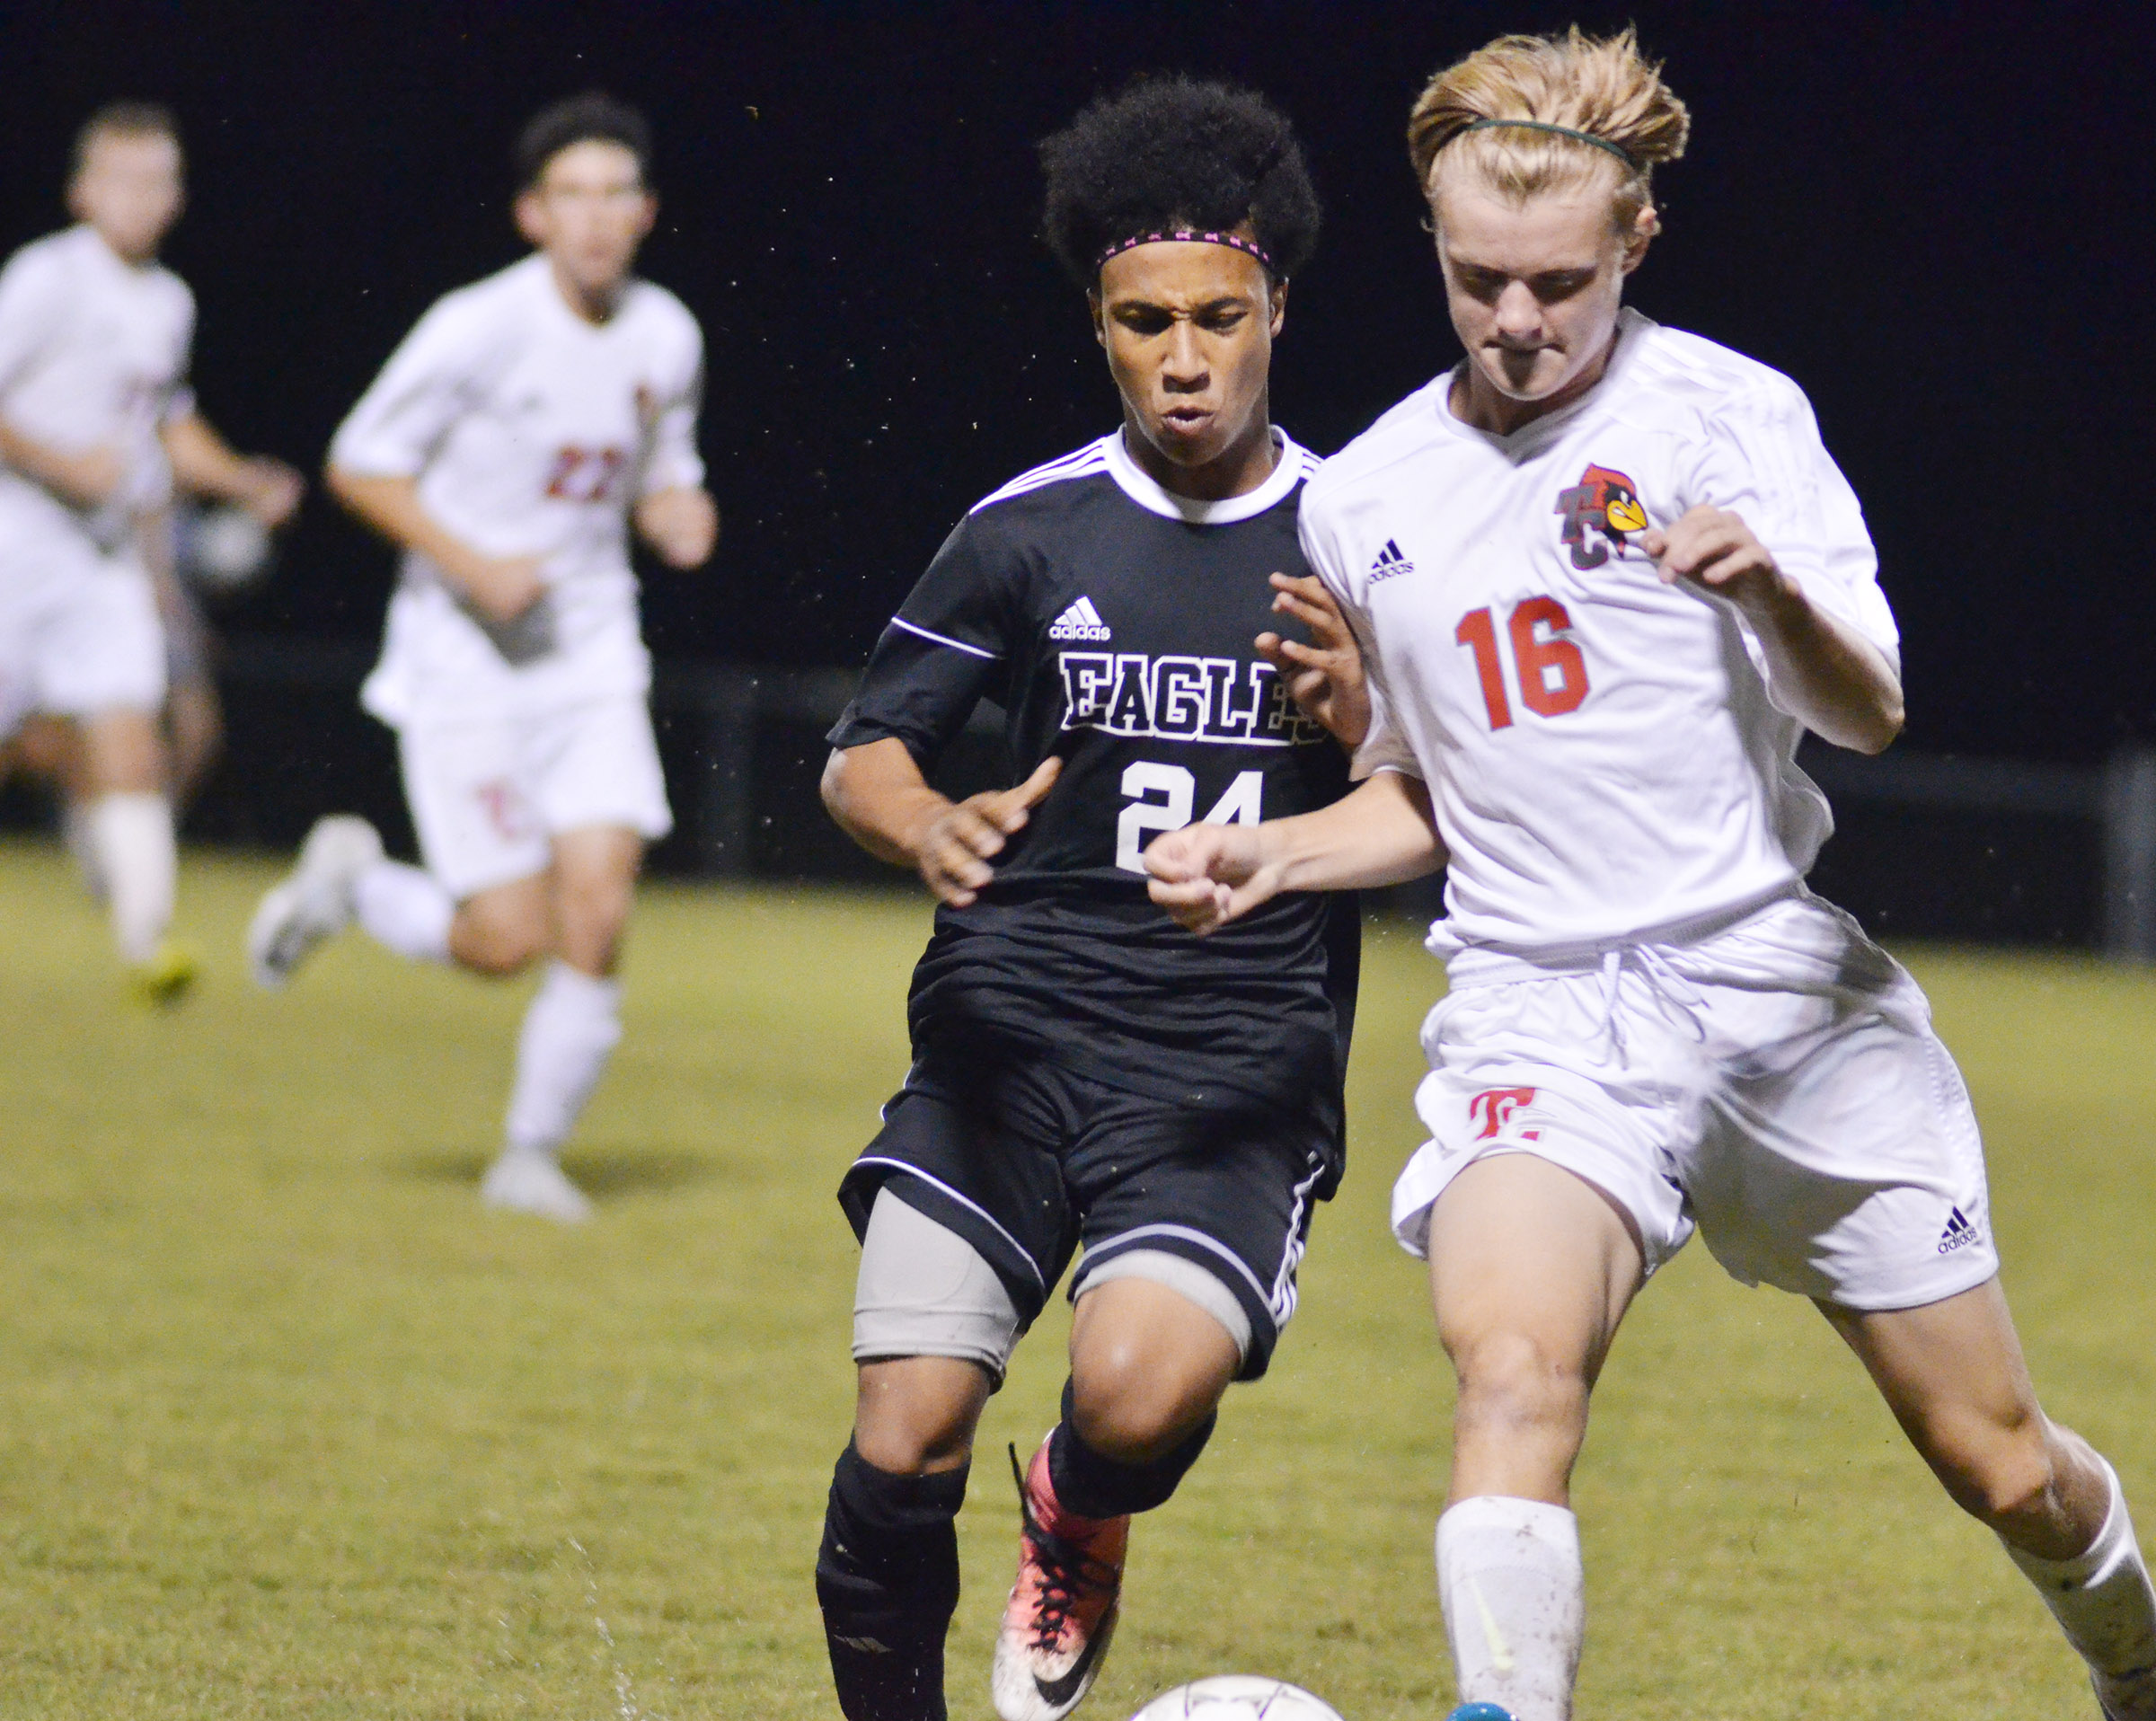 CHS junior Daniel Johnson battles for the ball.